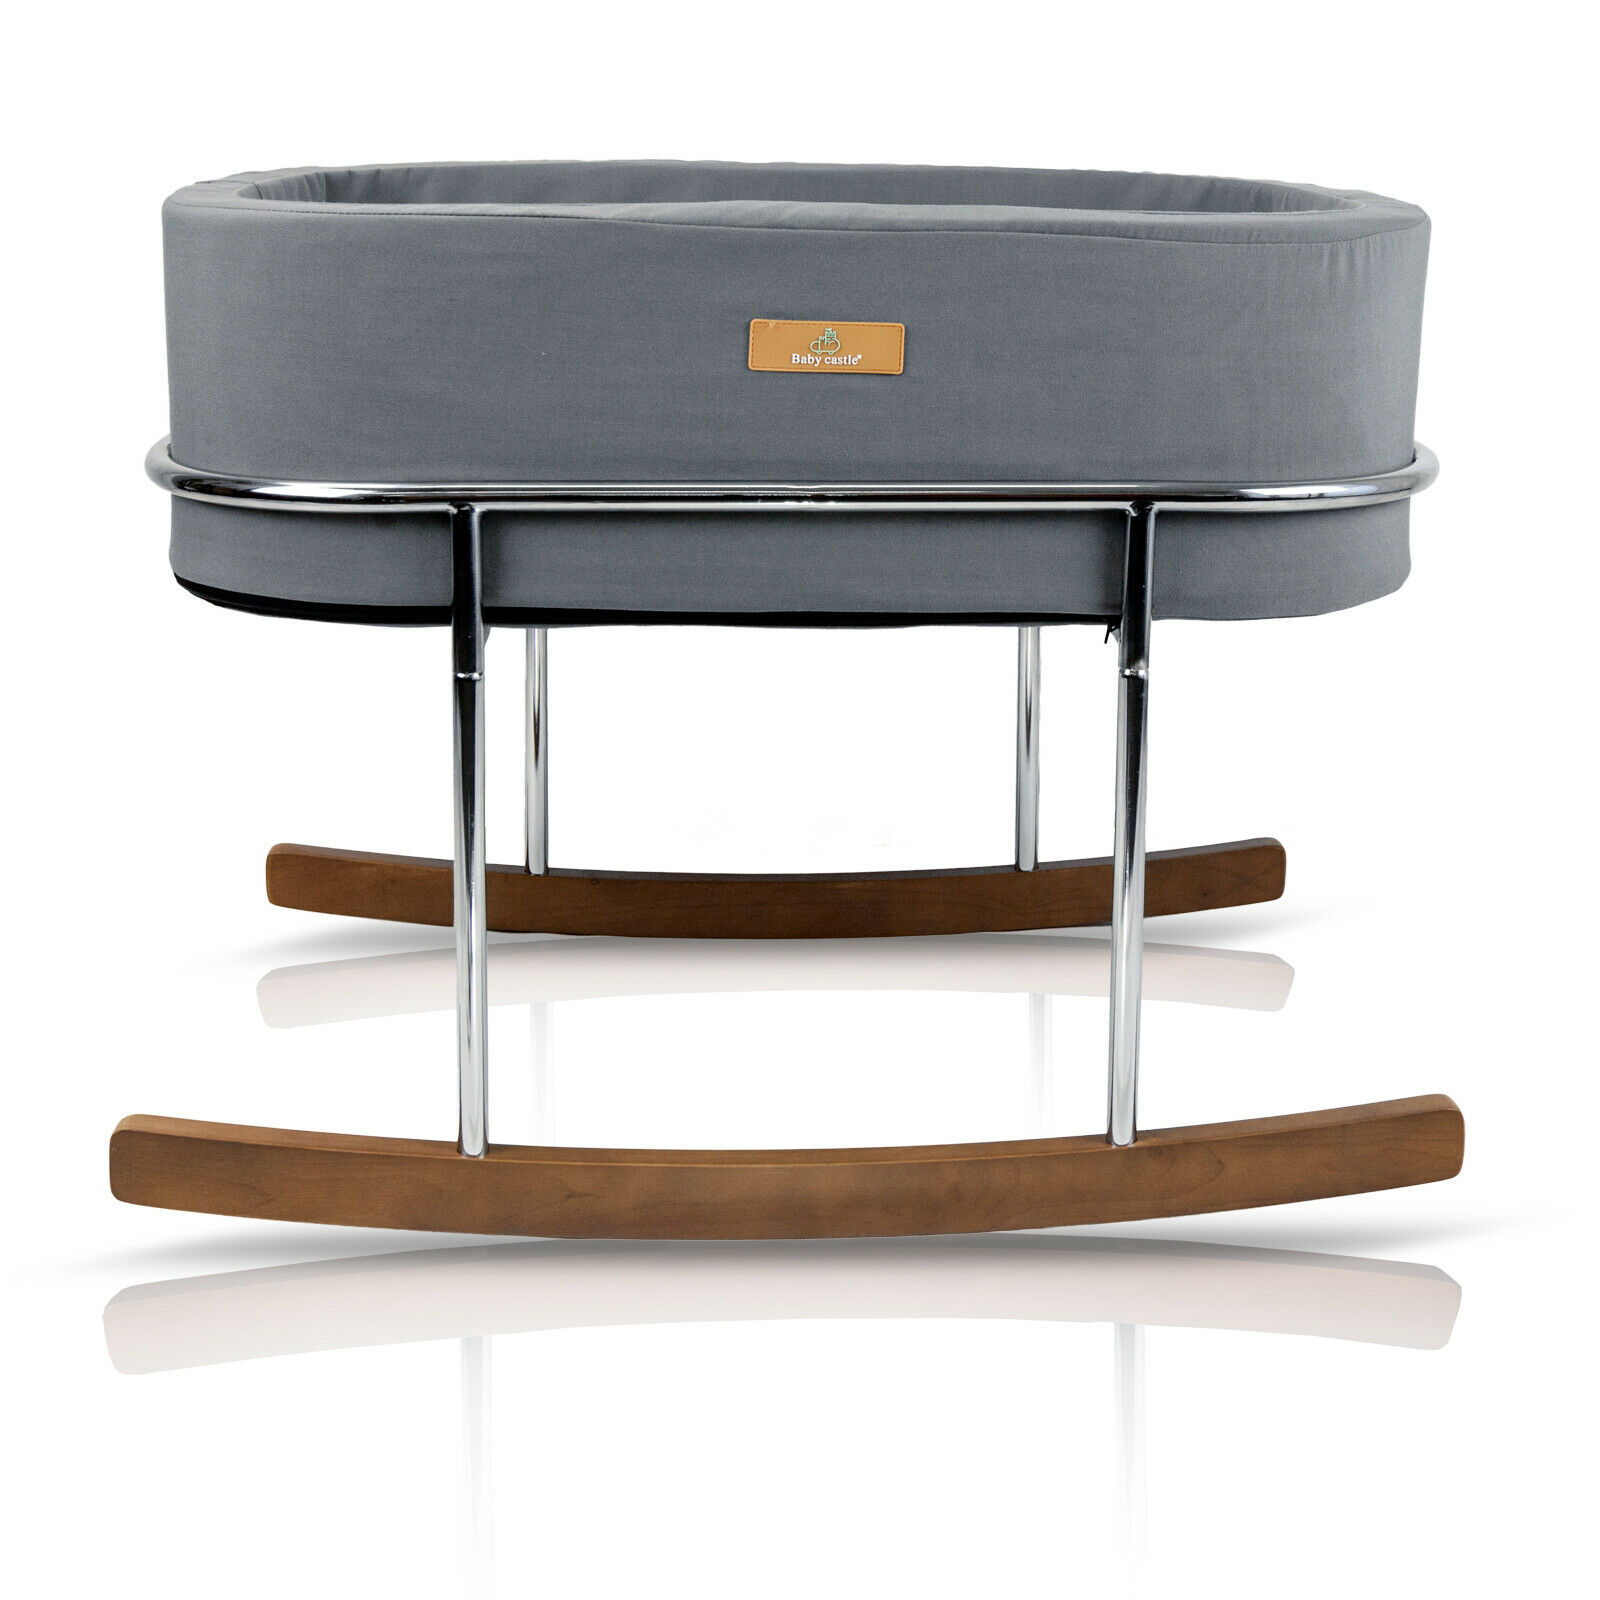 Rocking Baby Bassinet with Chrome Legs Walnut Wood Rocking Feet and Mattress by Baby Castle